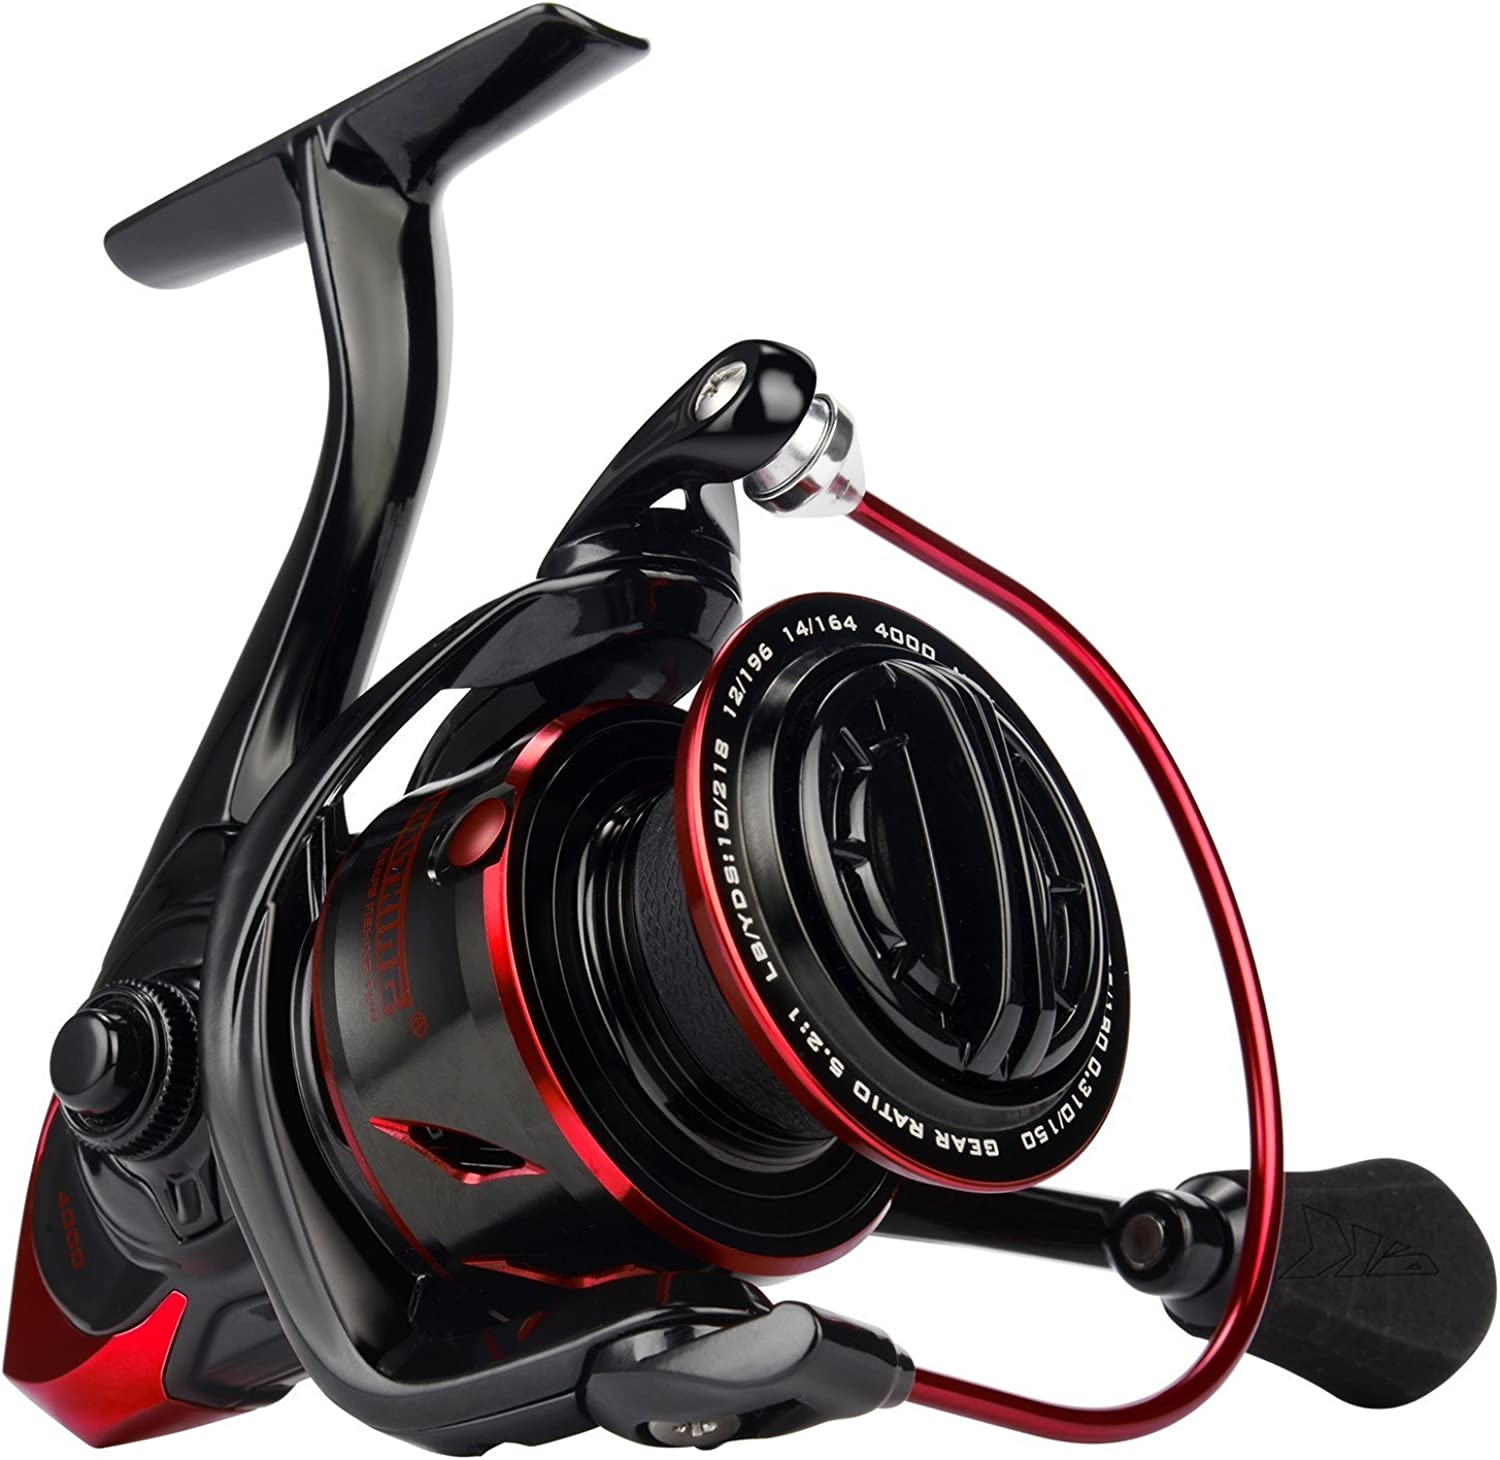 KastKing Sharky III Fishing Reel  New 2018 Spinning Reel  Carbon Fiber 39.5 lbs Max Drag  10+1 Stainless BB for Saltwater Or Freshwater